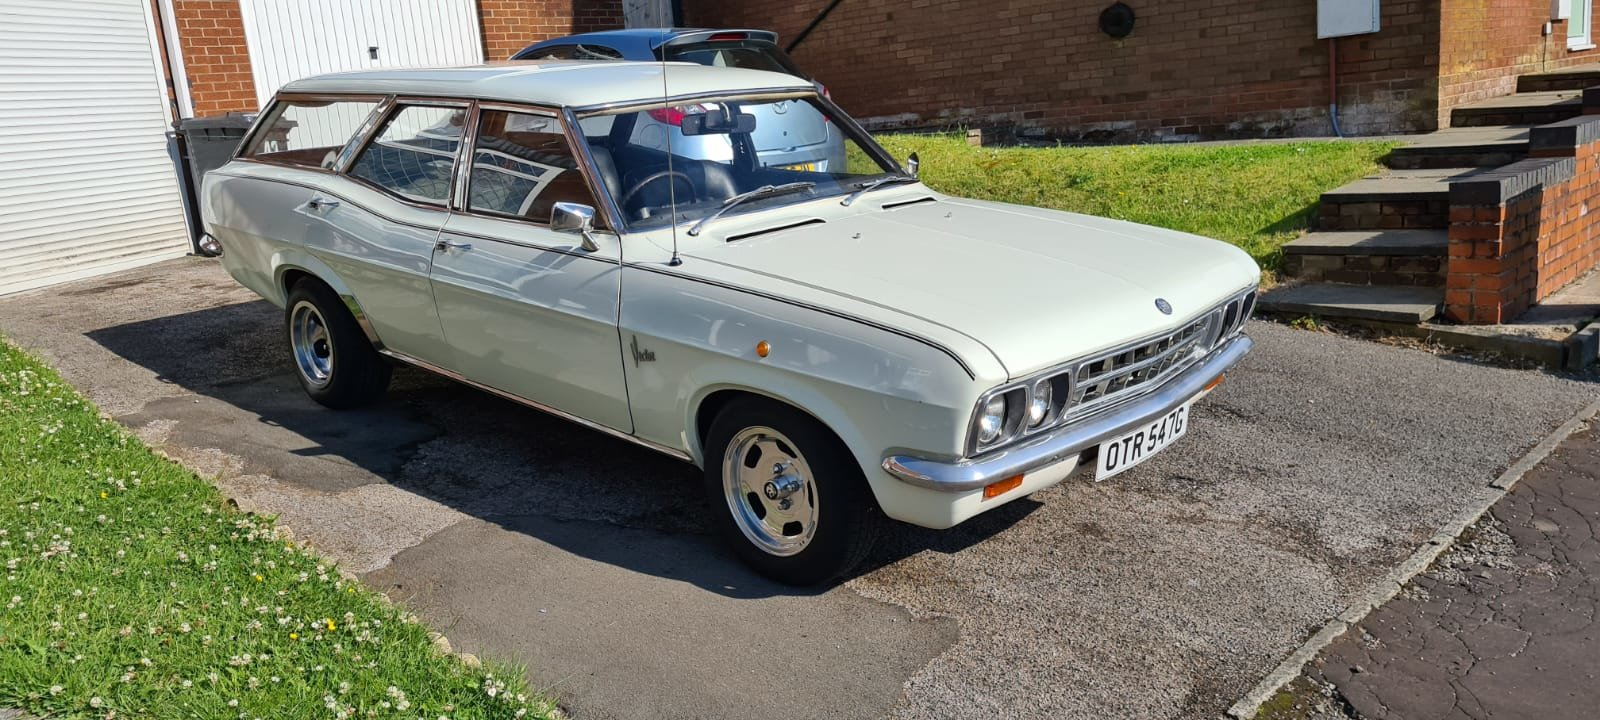 1968 Vauxhall victor 3300sl fd estate For Sale (picture 1 of 5)